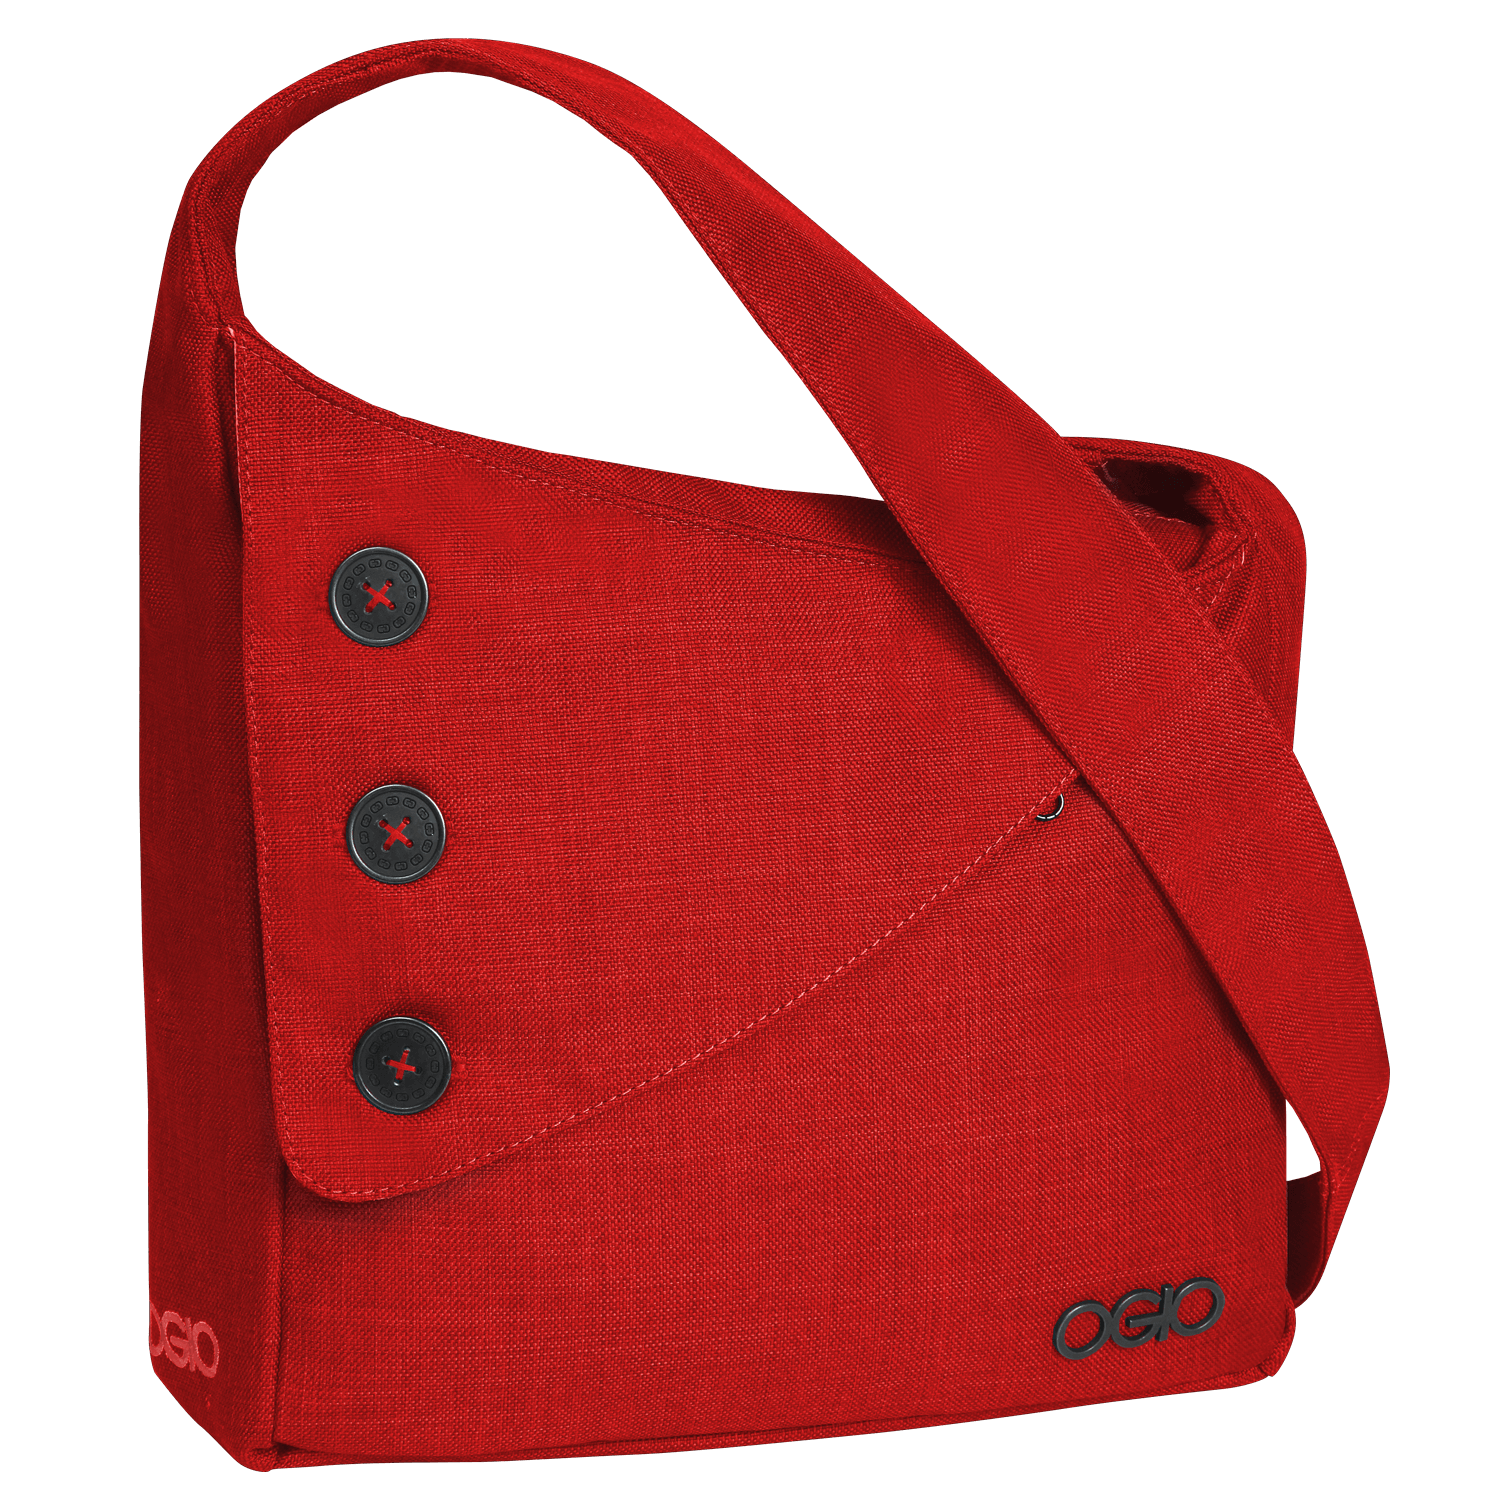 Red Women Bag Png Image PNG Image